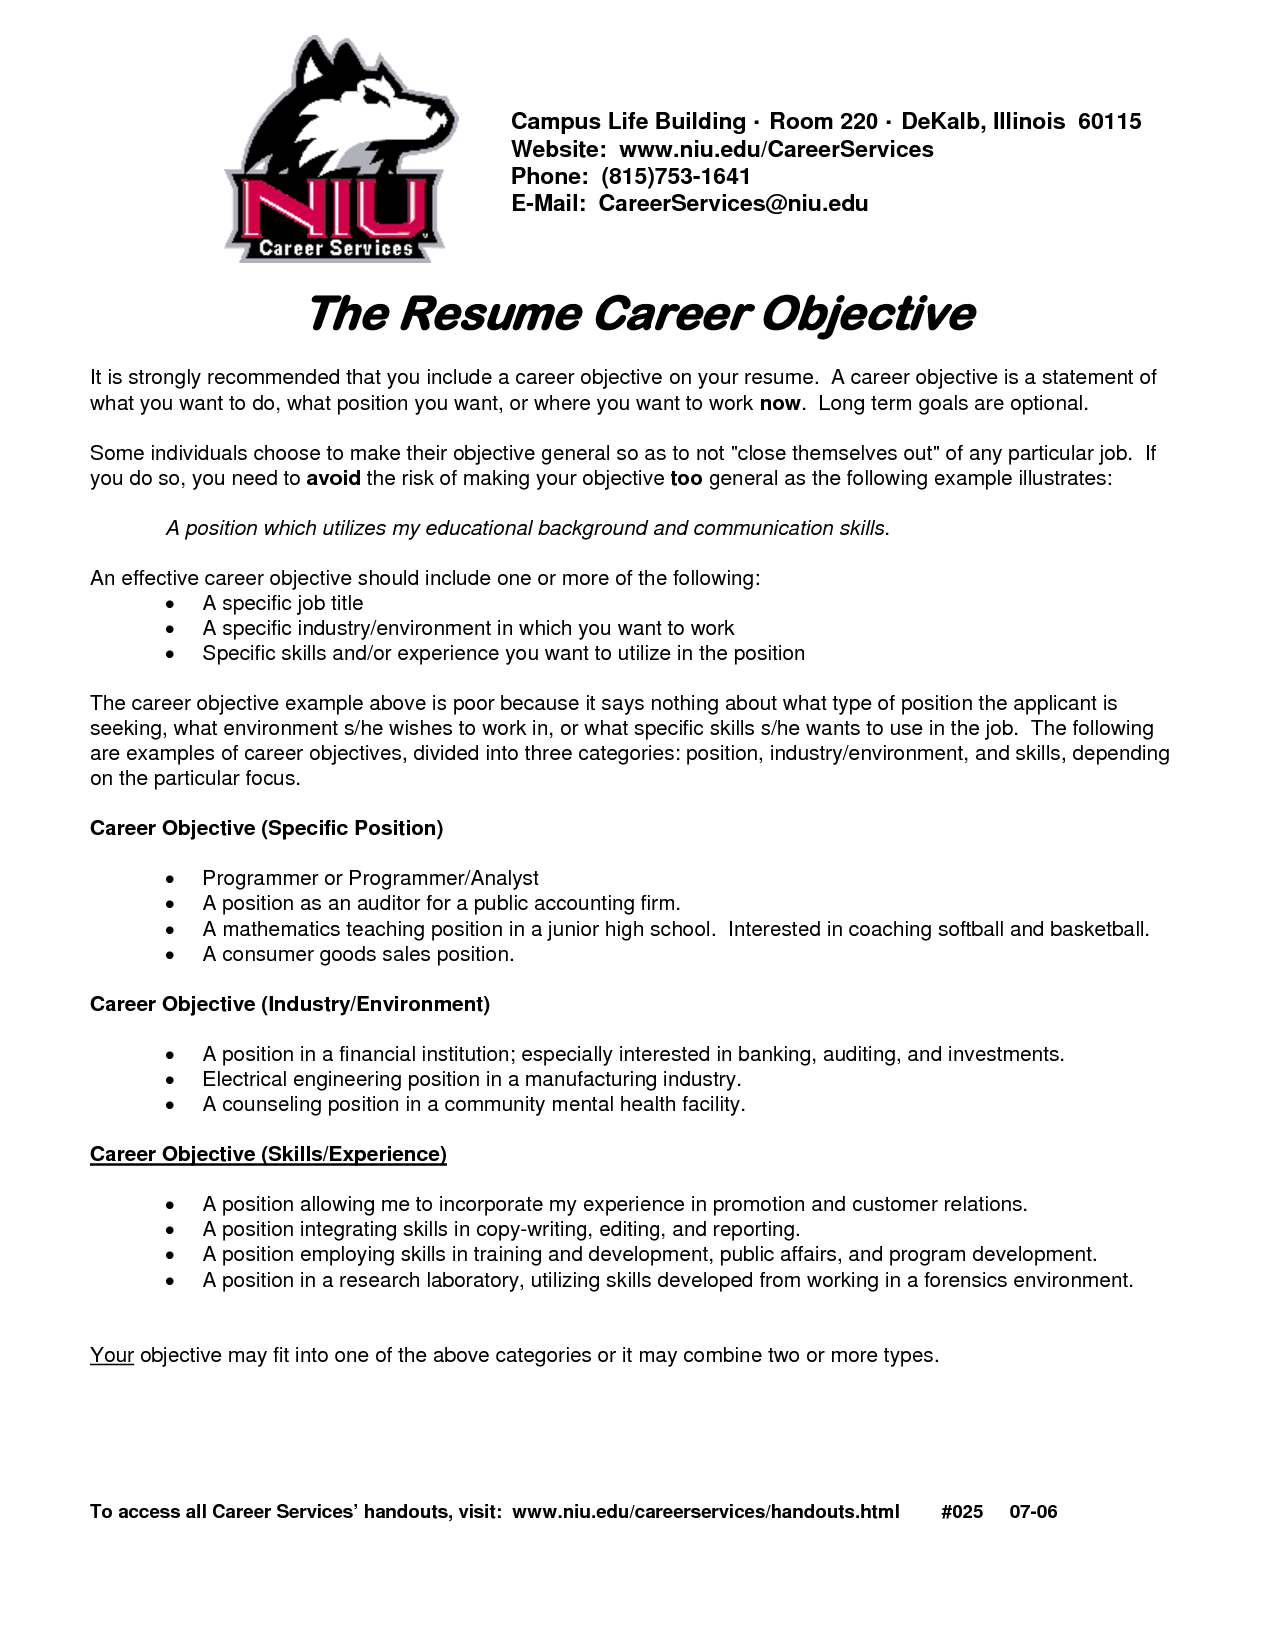 student resume objective examples resume new job - It Job Resume Sample